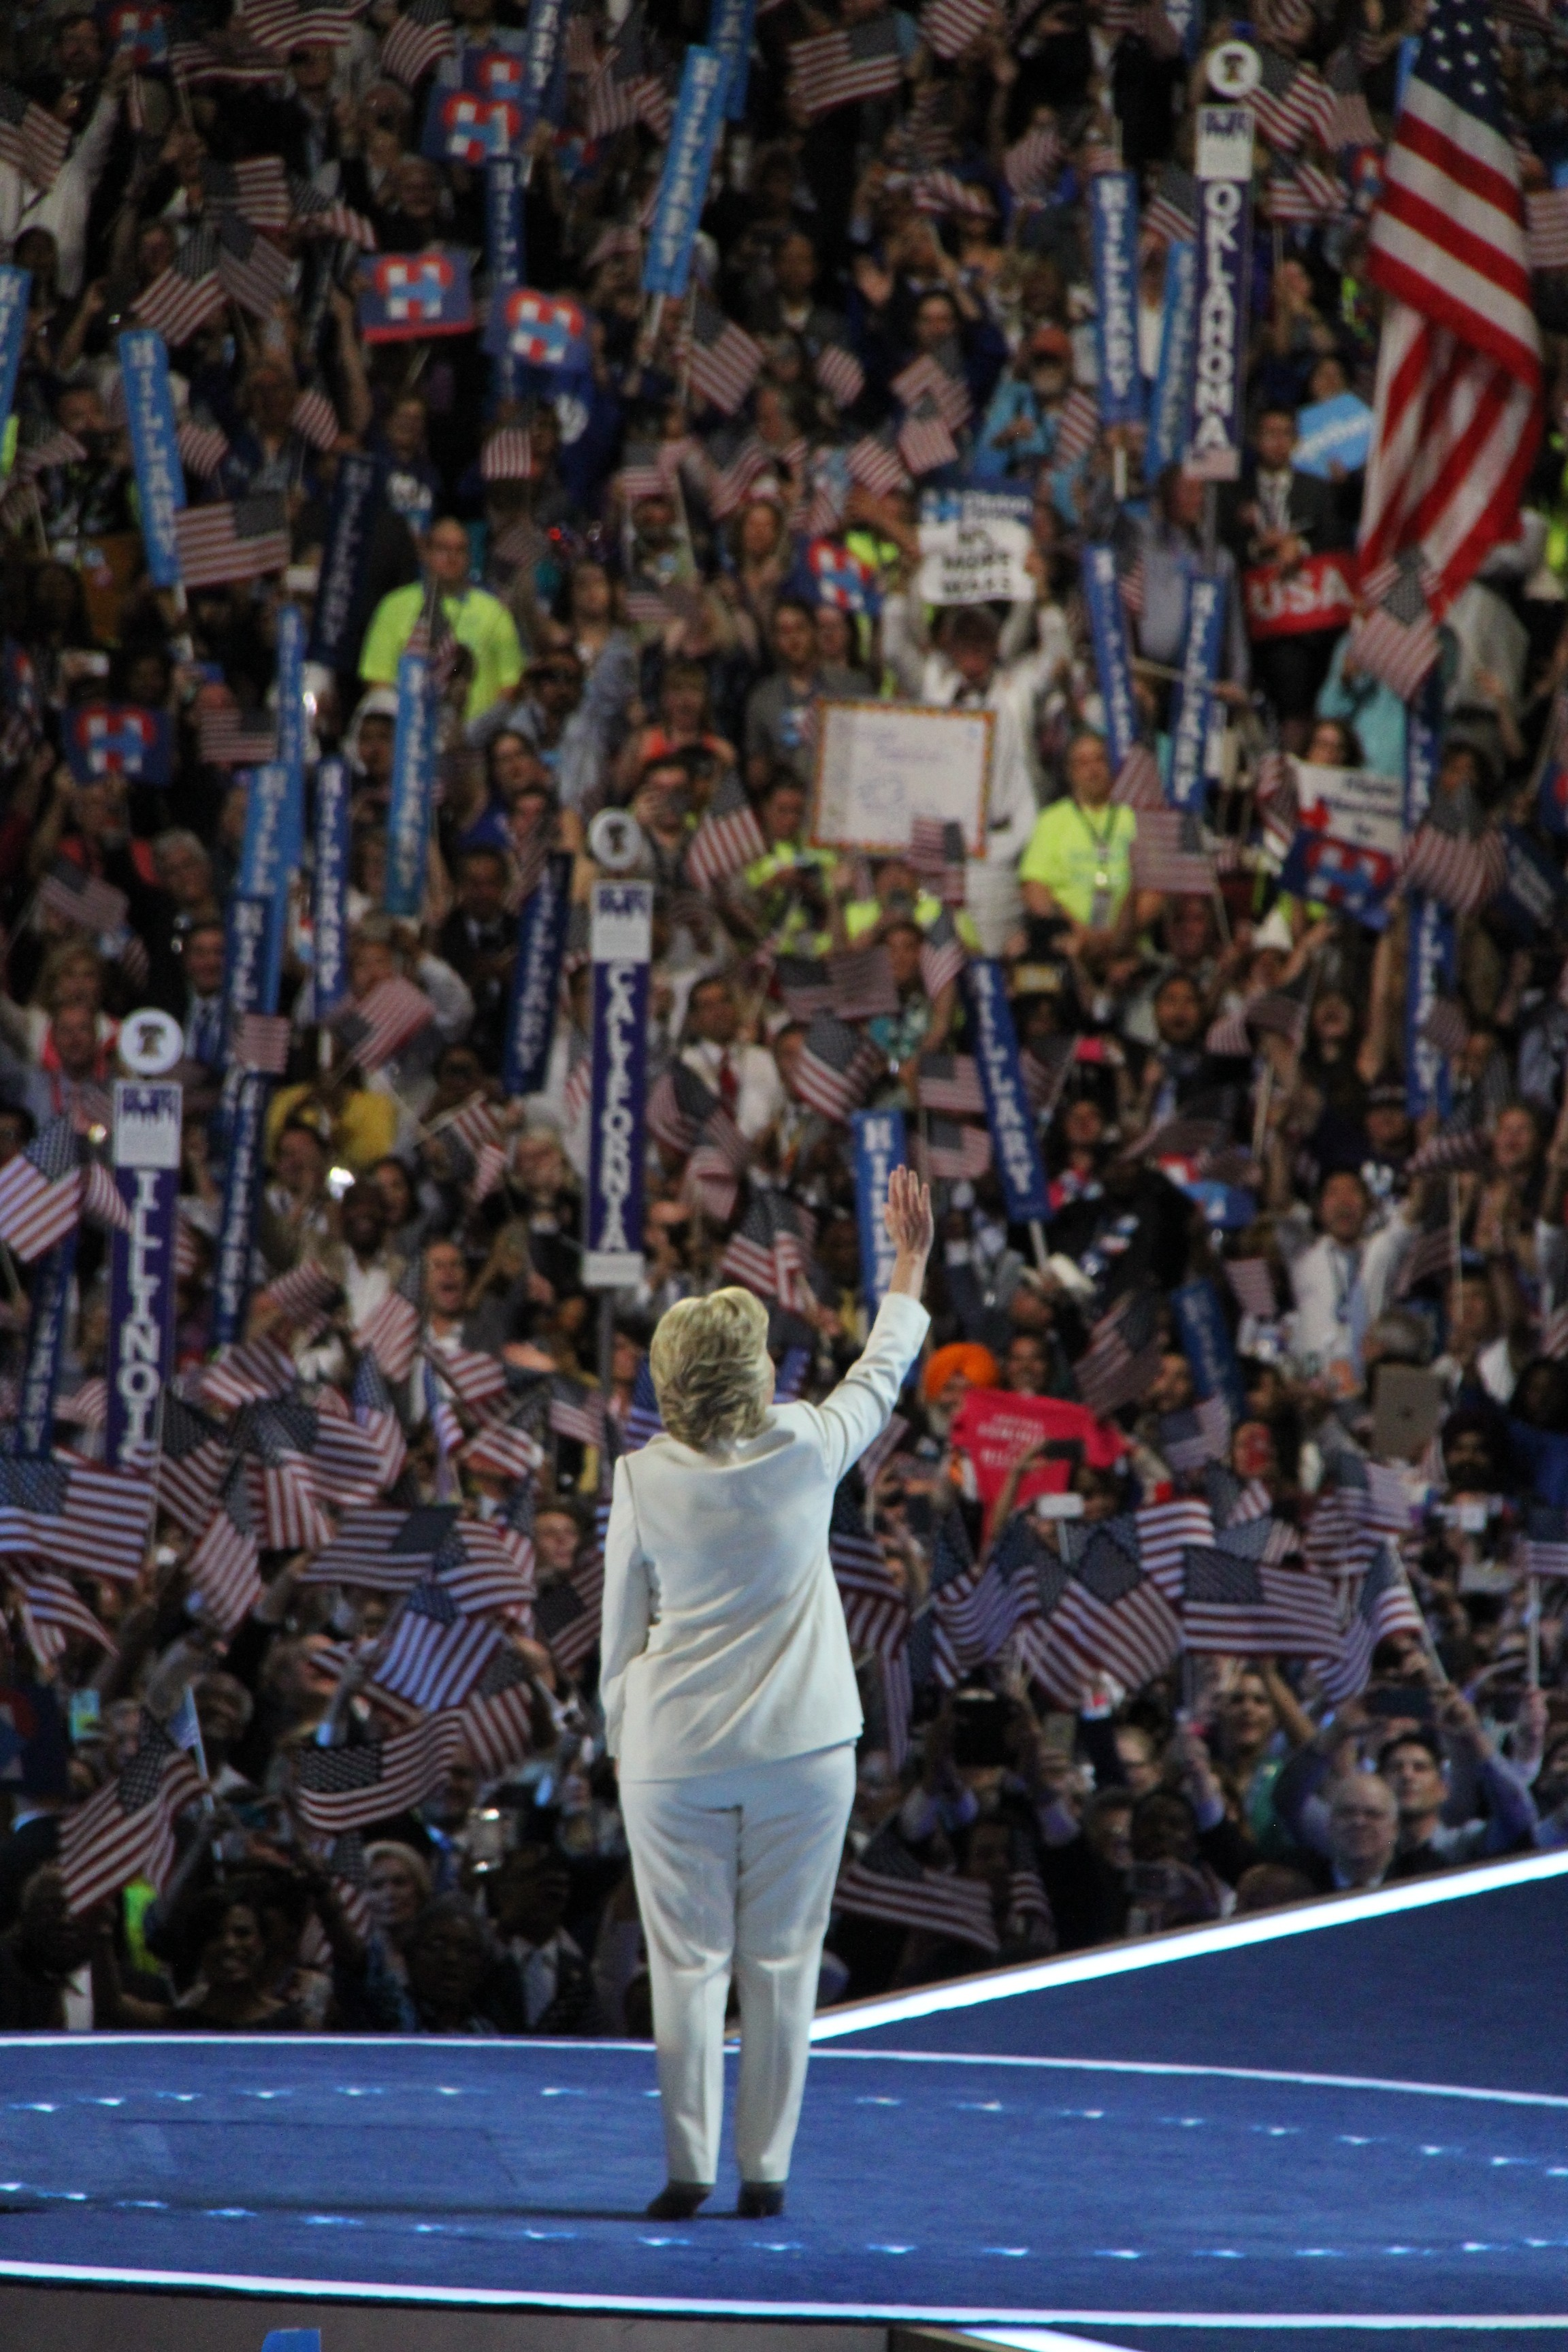 """Hillary Clinton at the Democratic National Convention Last Night"" by Andrew Dallos (CC BY-NC-ND 2.0)"